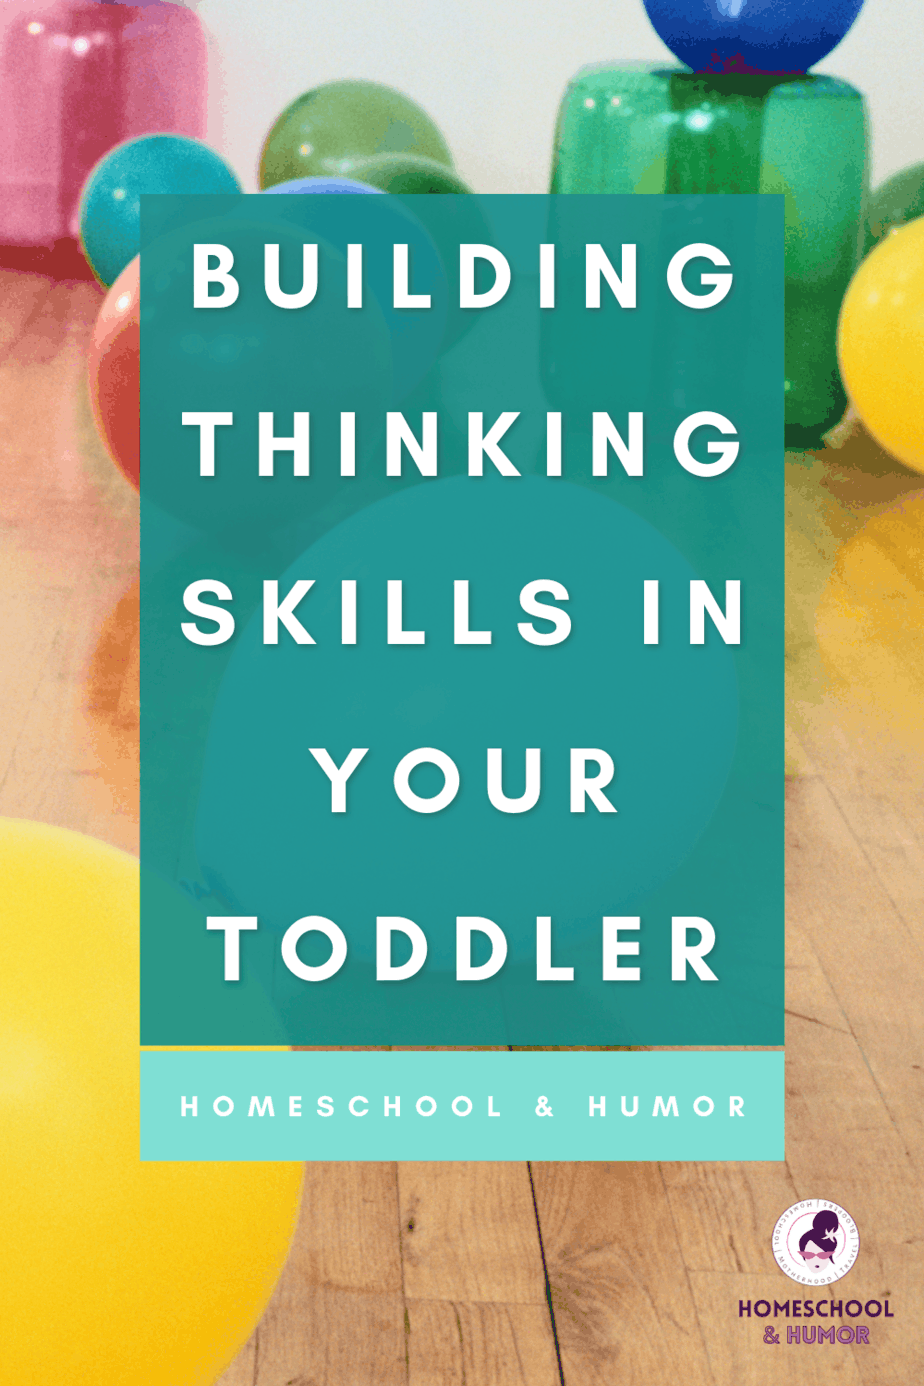 How to Solve Problems with Critical Thinking Activities for Toddlers